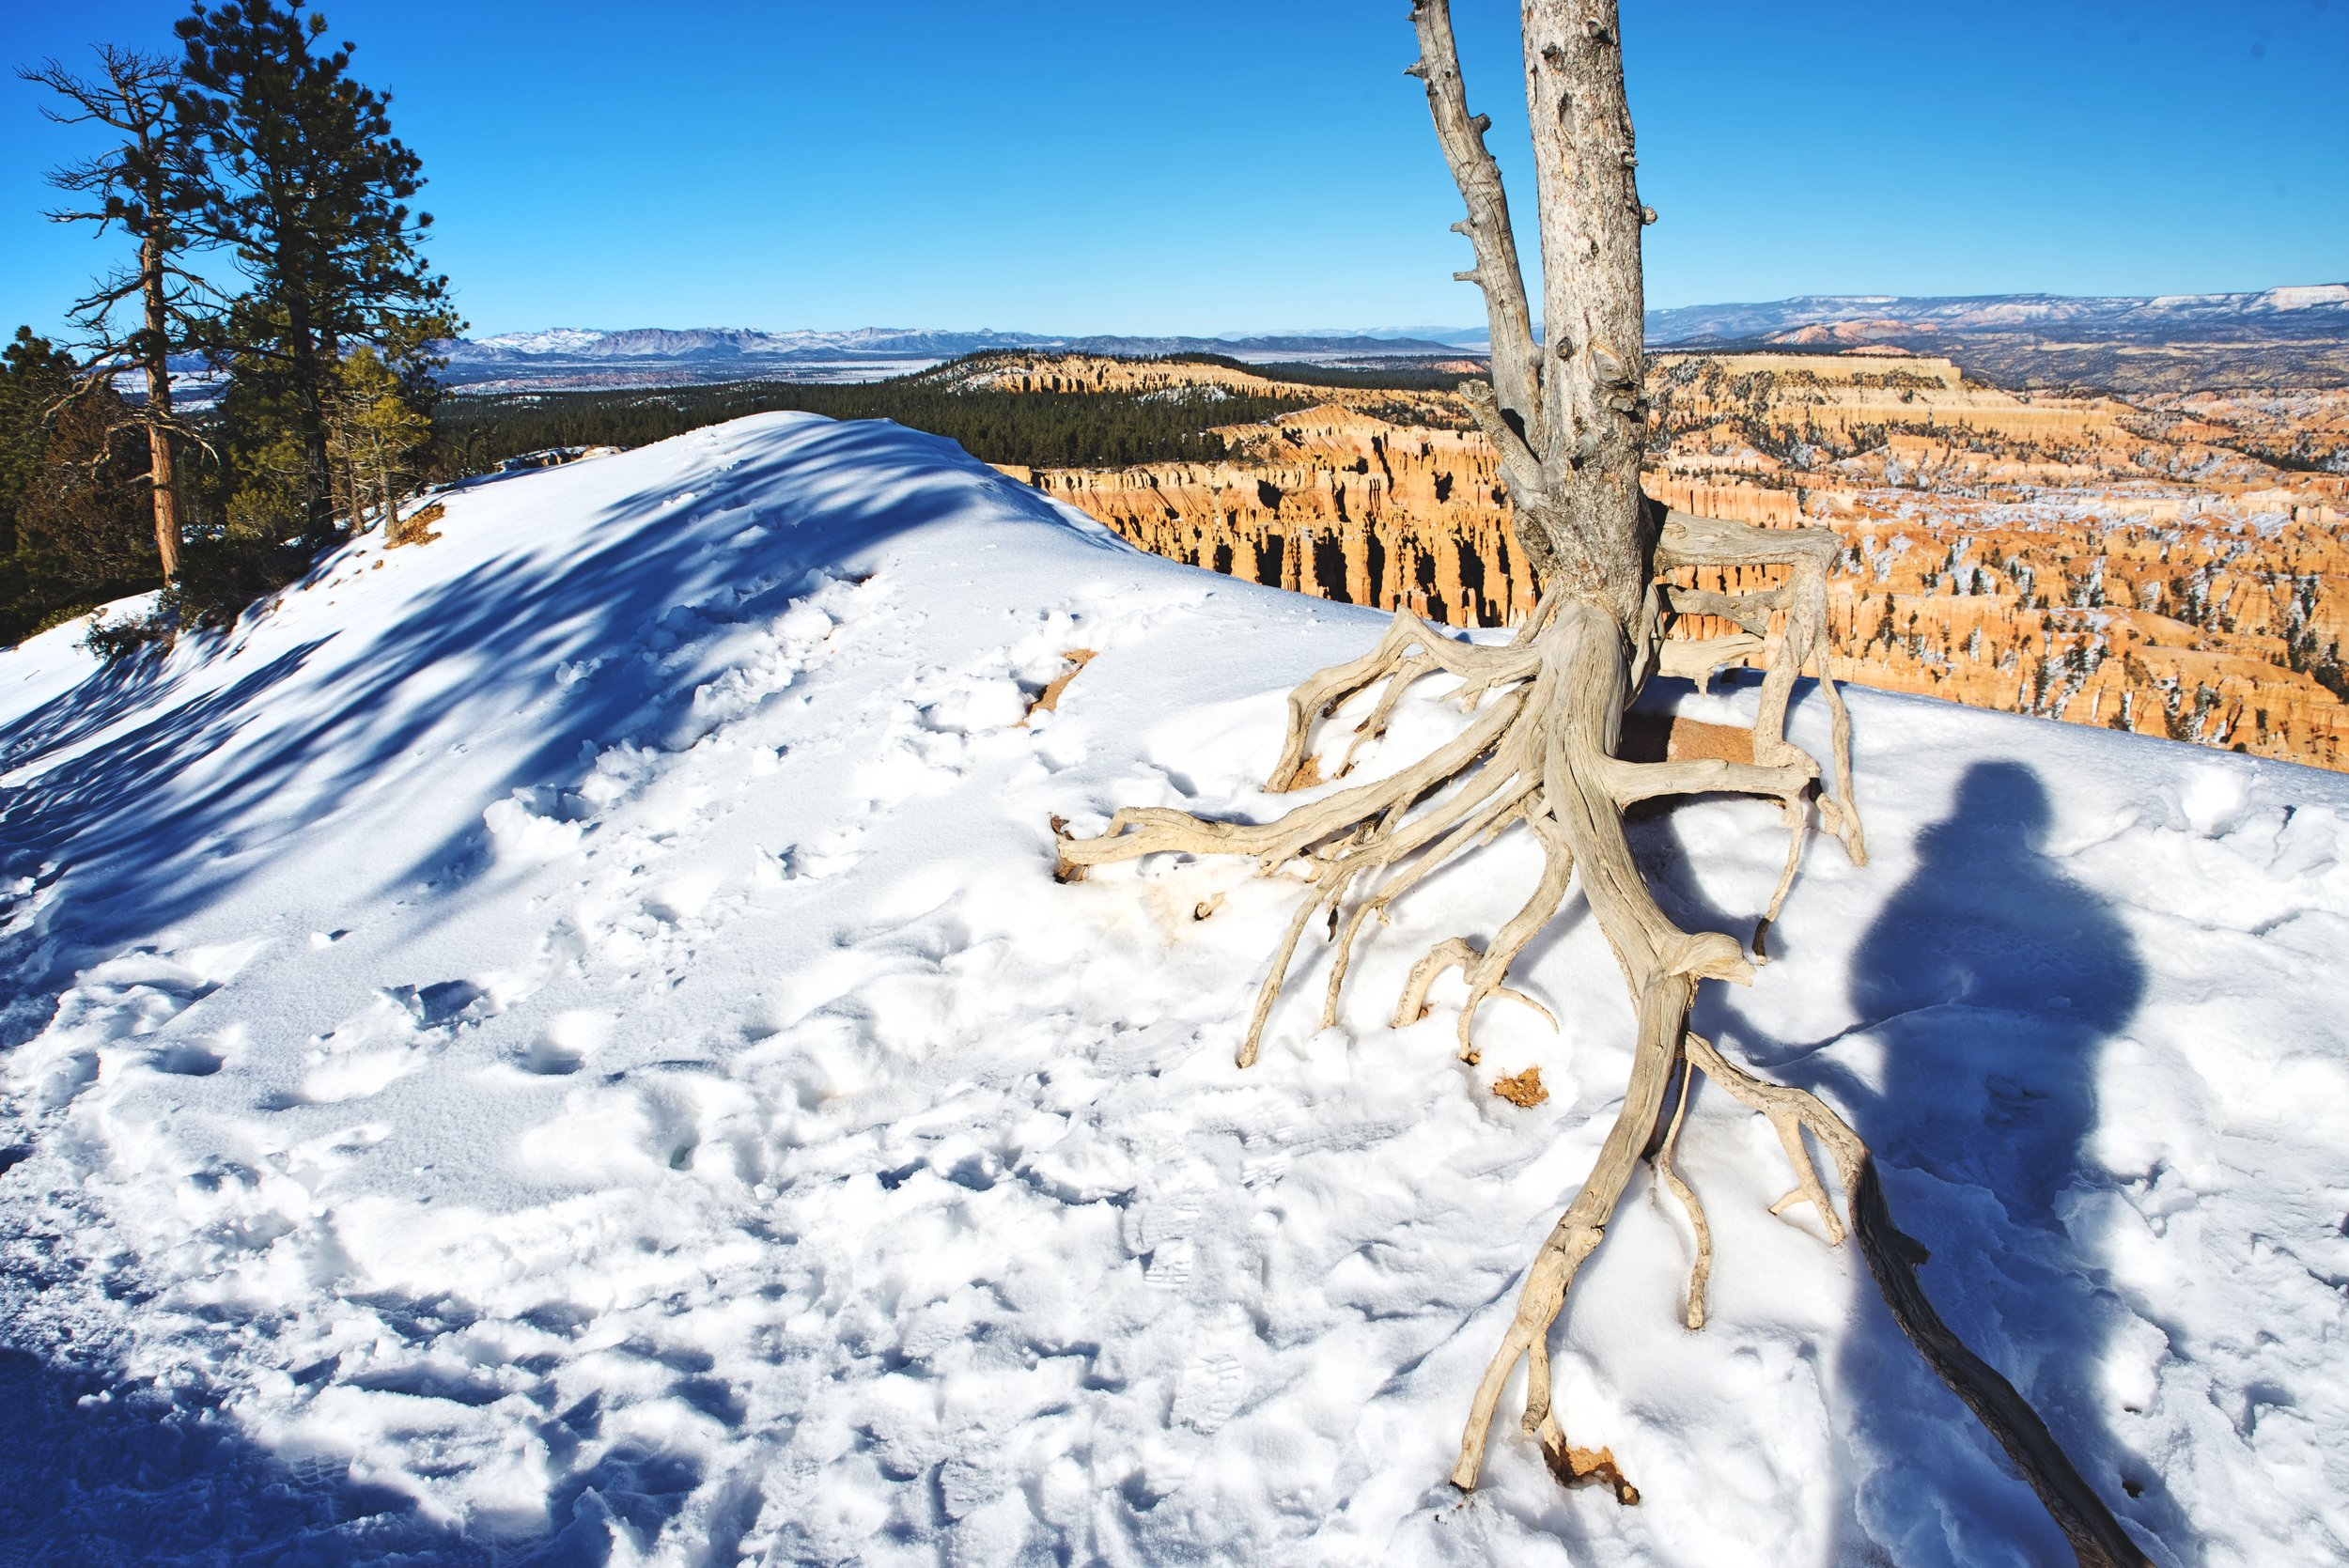 The exposed roots of this tree reveal just how quickly Bryce Canyon is eroding.